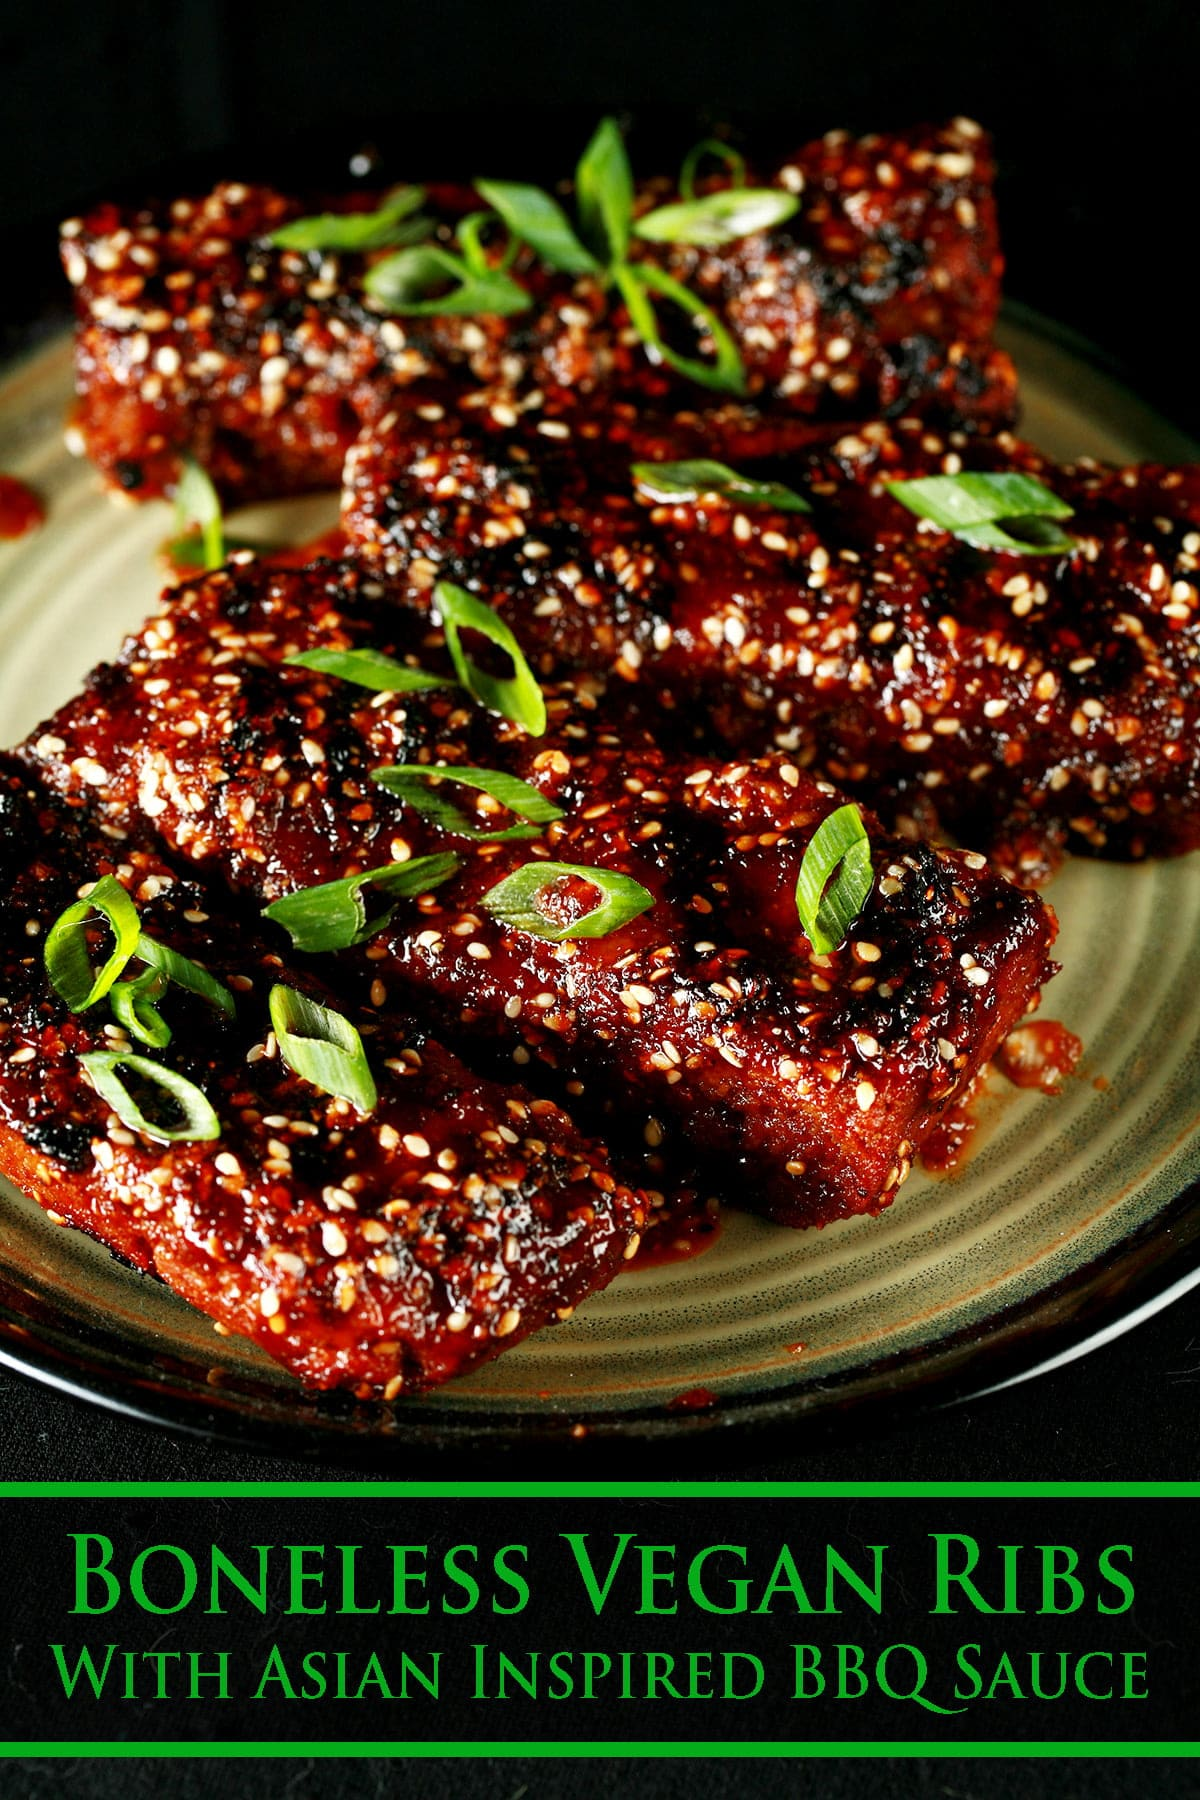 Close up photo of a plate of boneless ribs. They're covered in a red-brown sauce, sesame seeds, and sliced green onion.